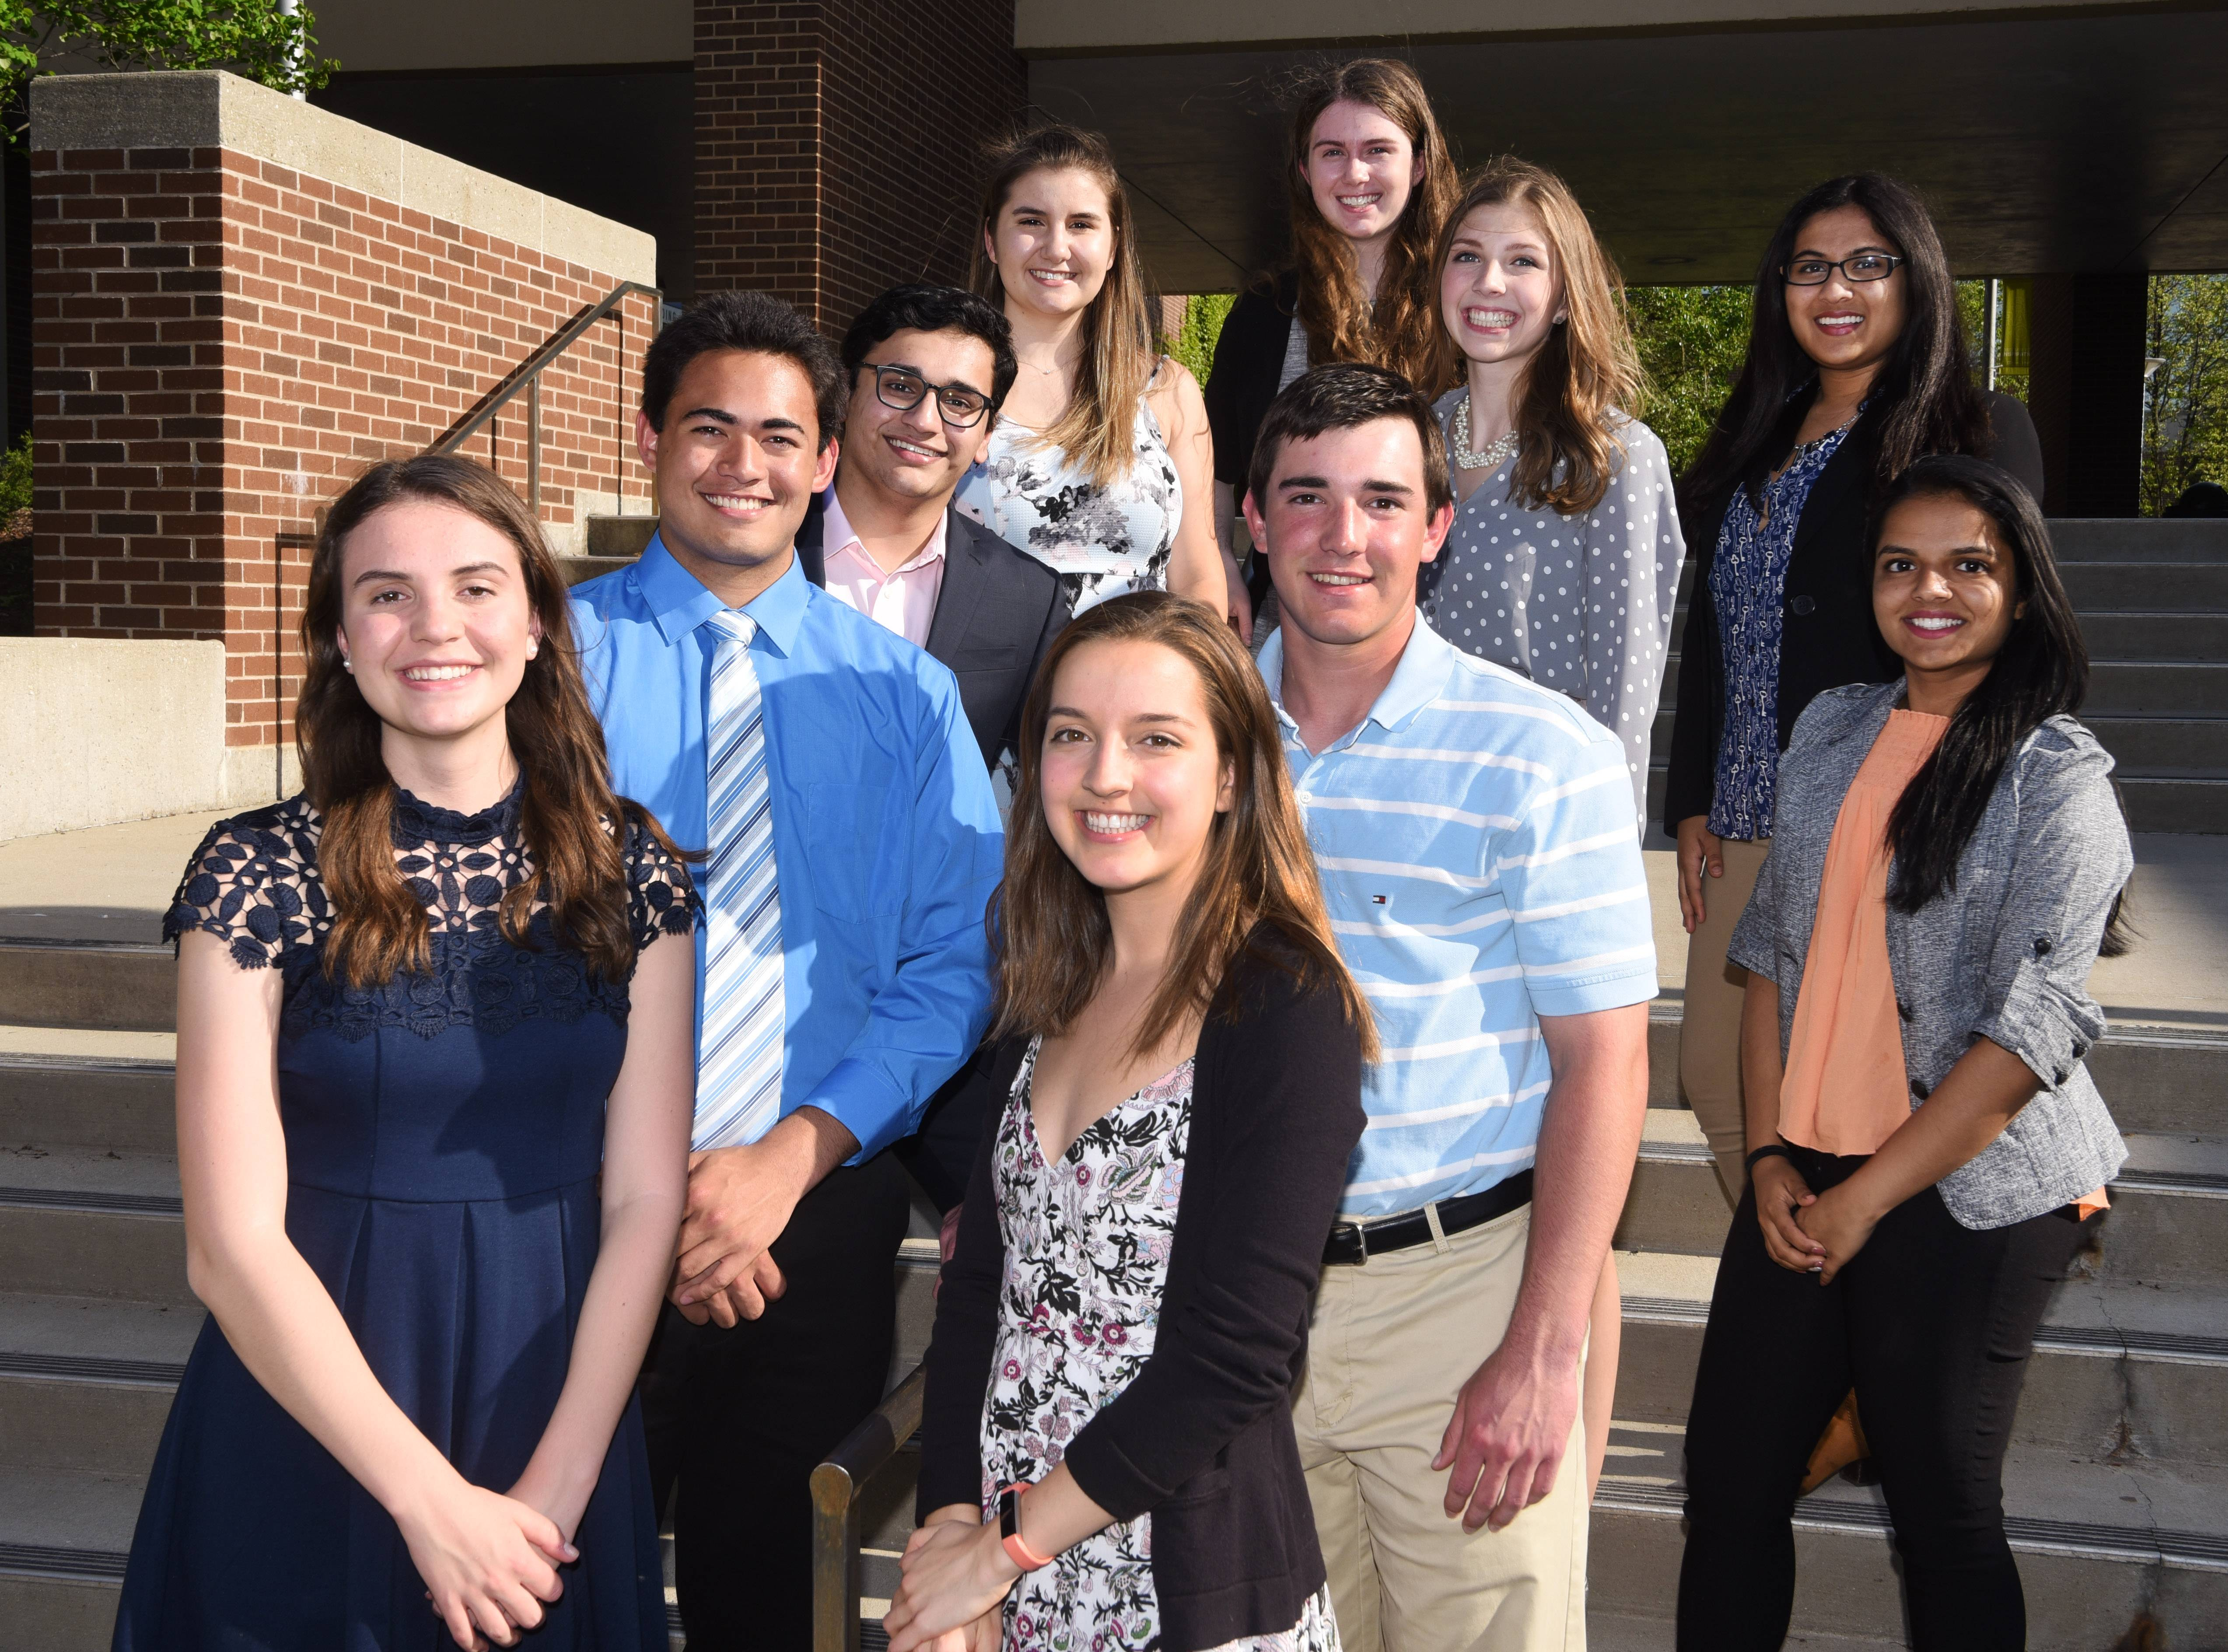 Meet the Daily Herald 2016-17 Academic Team -- our best and brightest